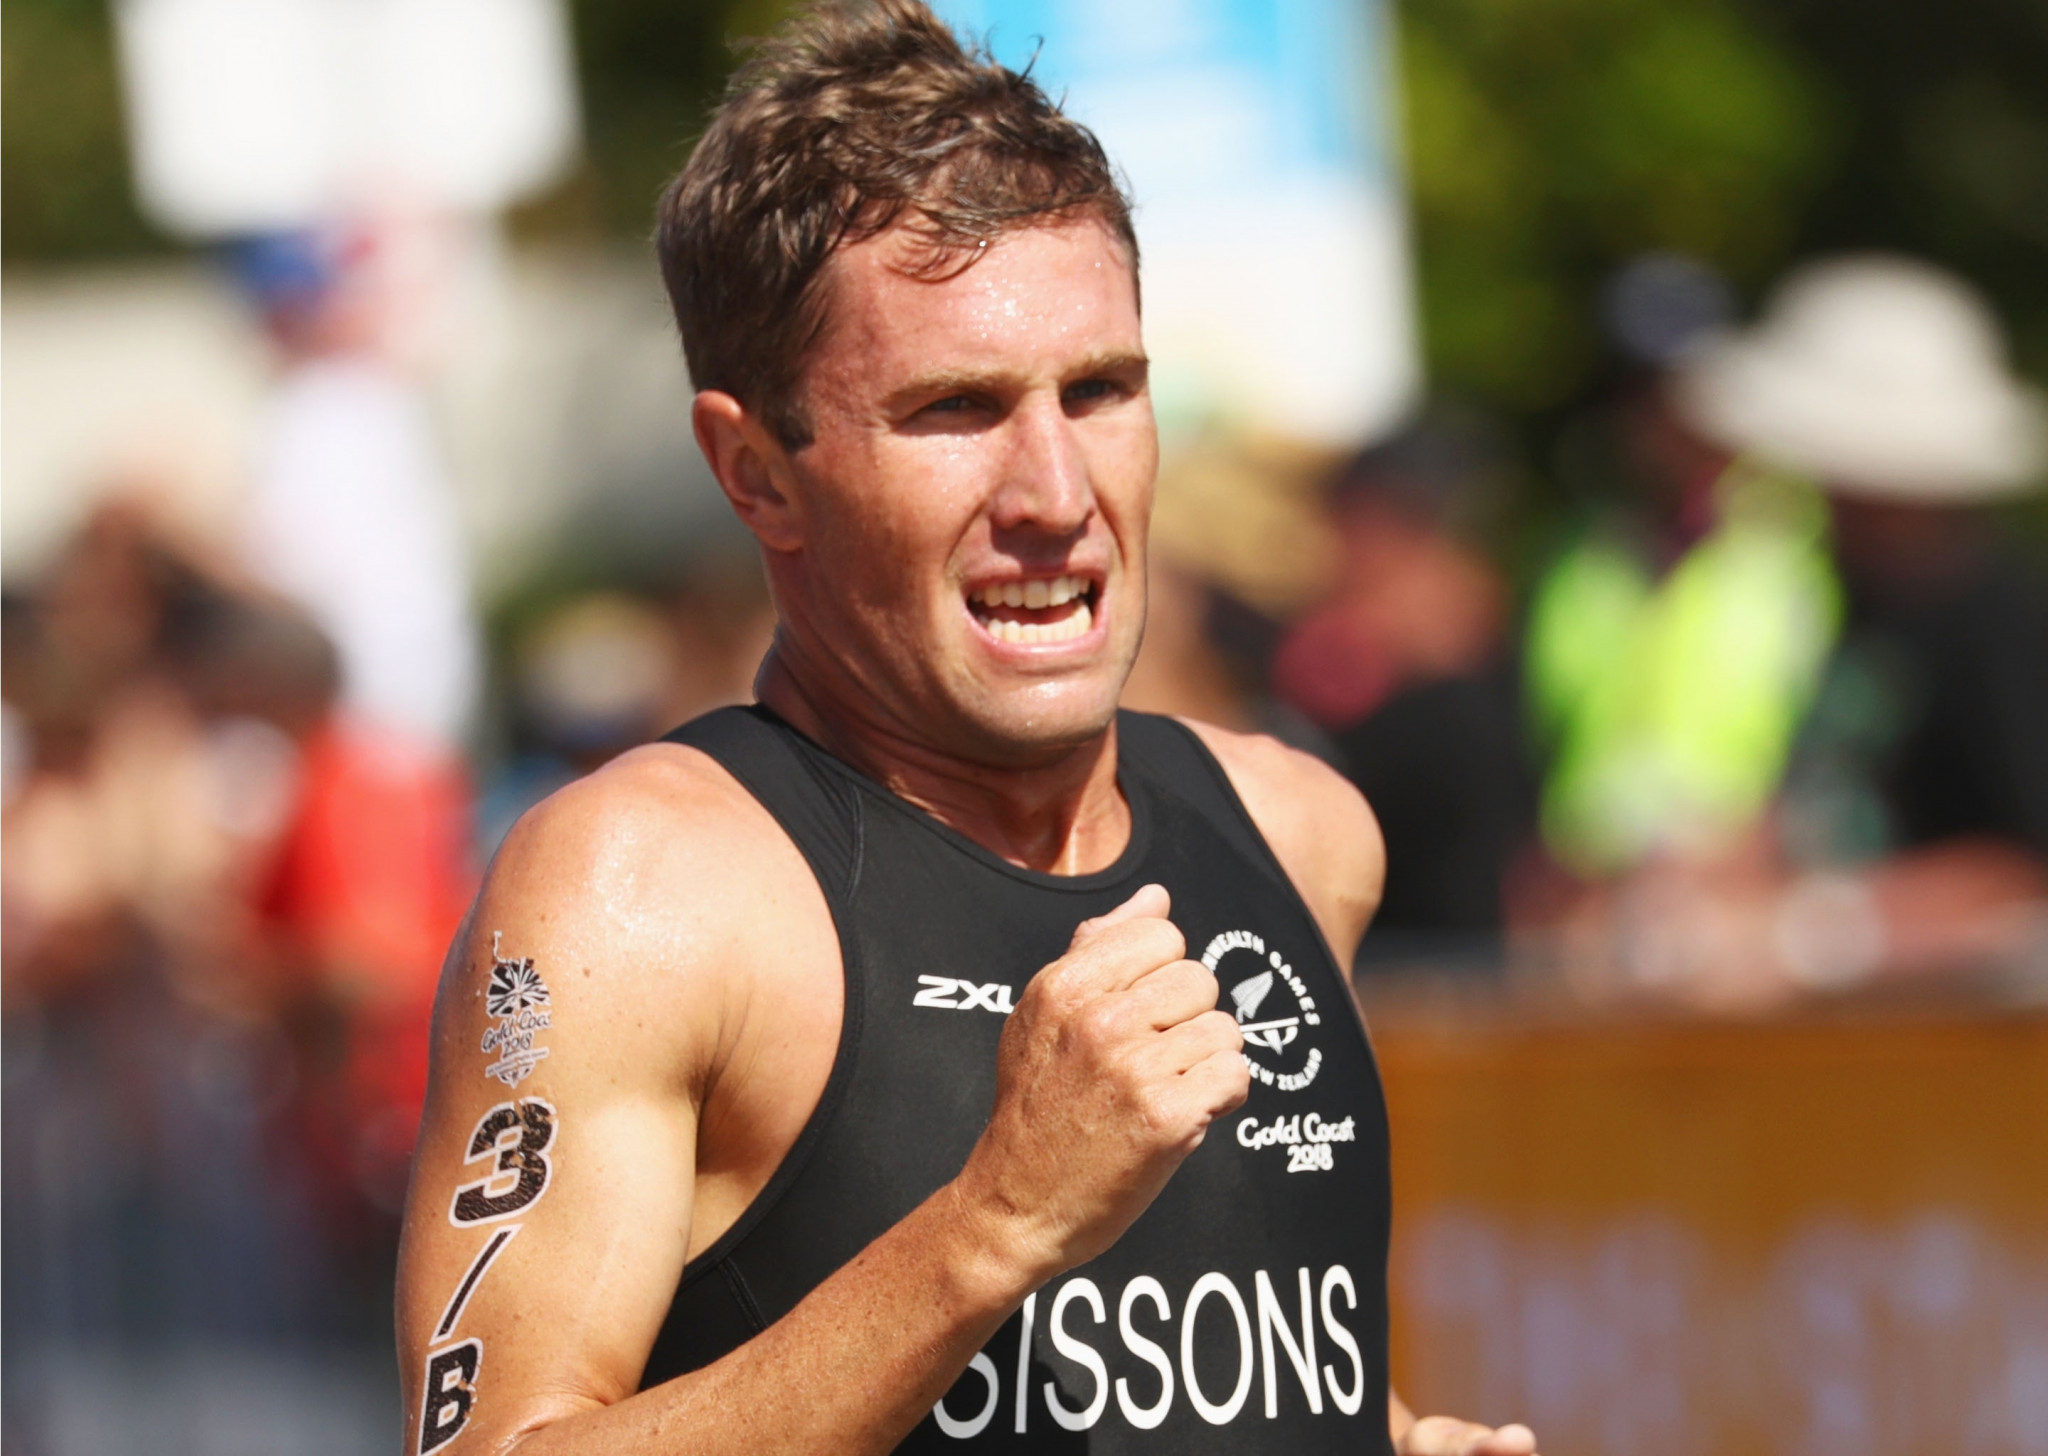 Sissons retires from triathlon after postponement of Tokyo 2020